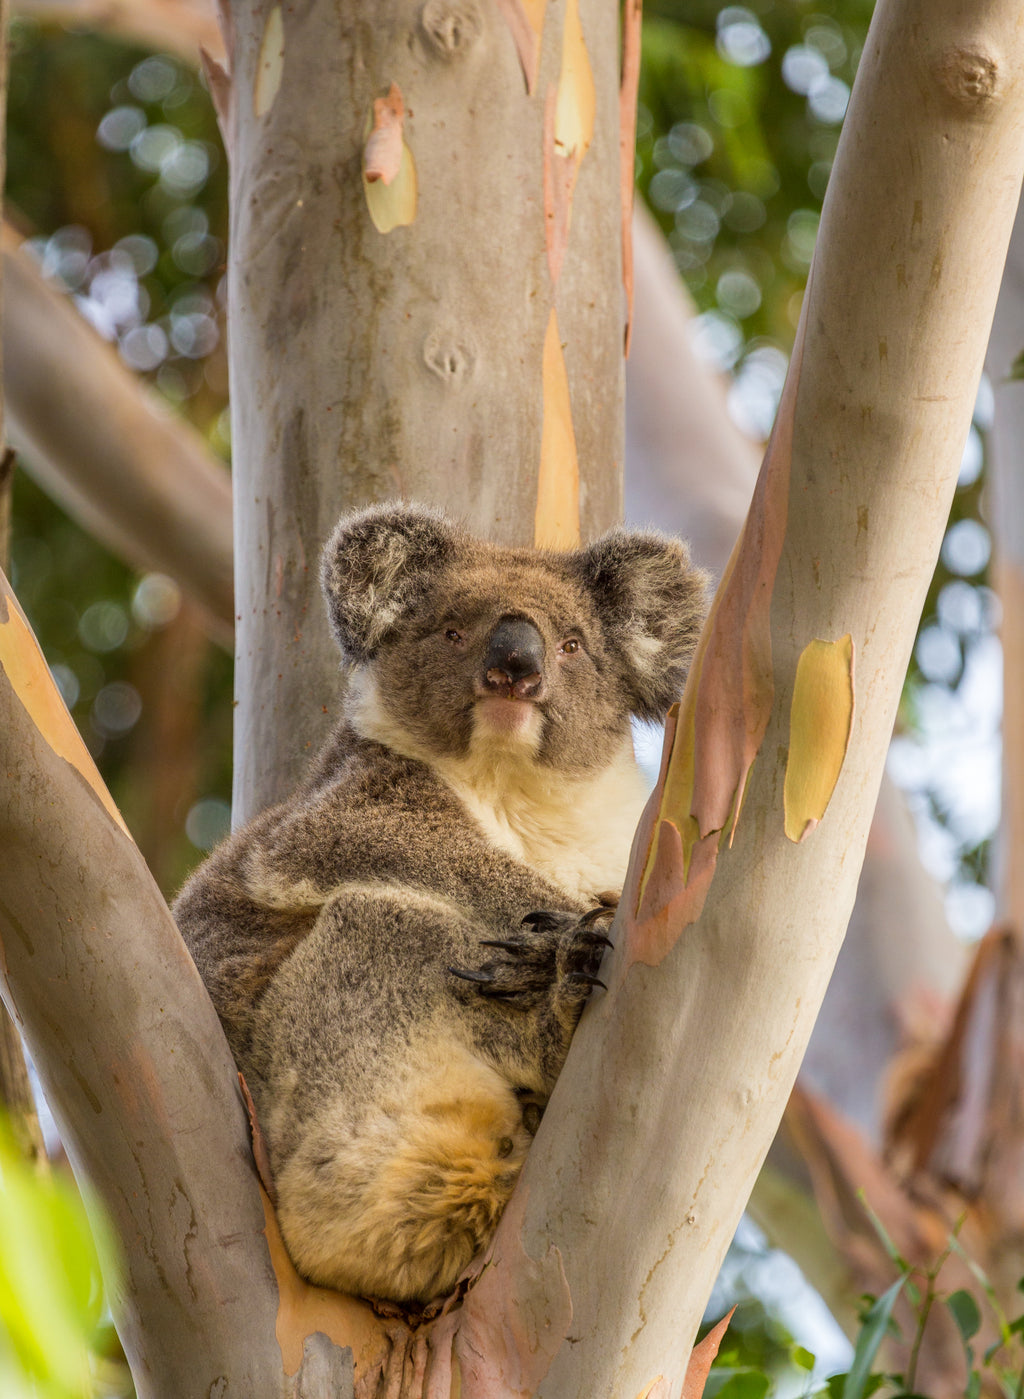 Koala in eucalyptus tree, Kangaroo Island Australia, wildlife travel photography